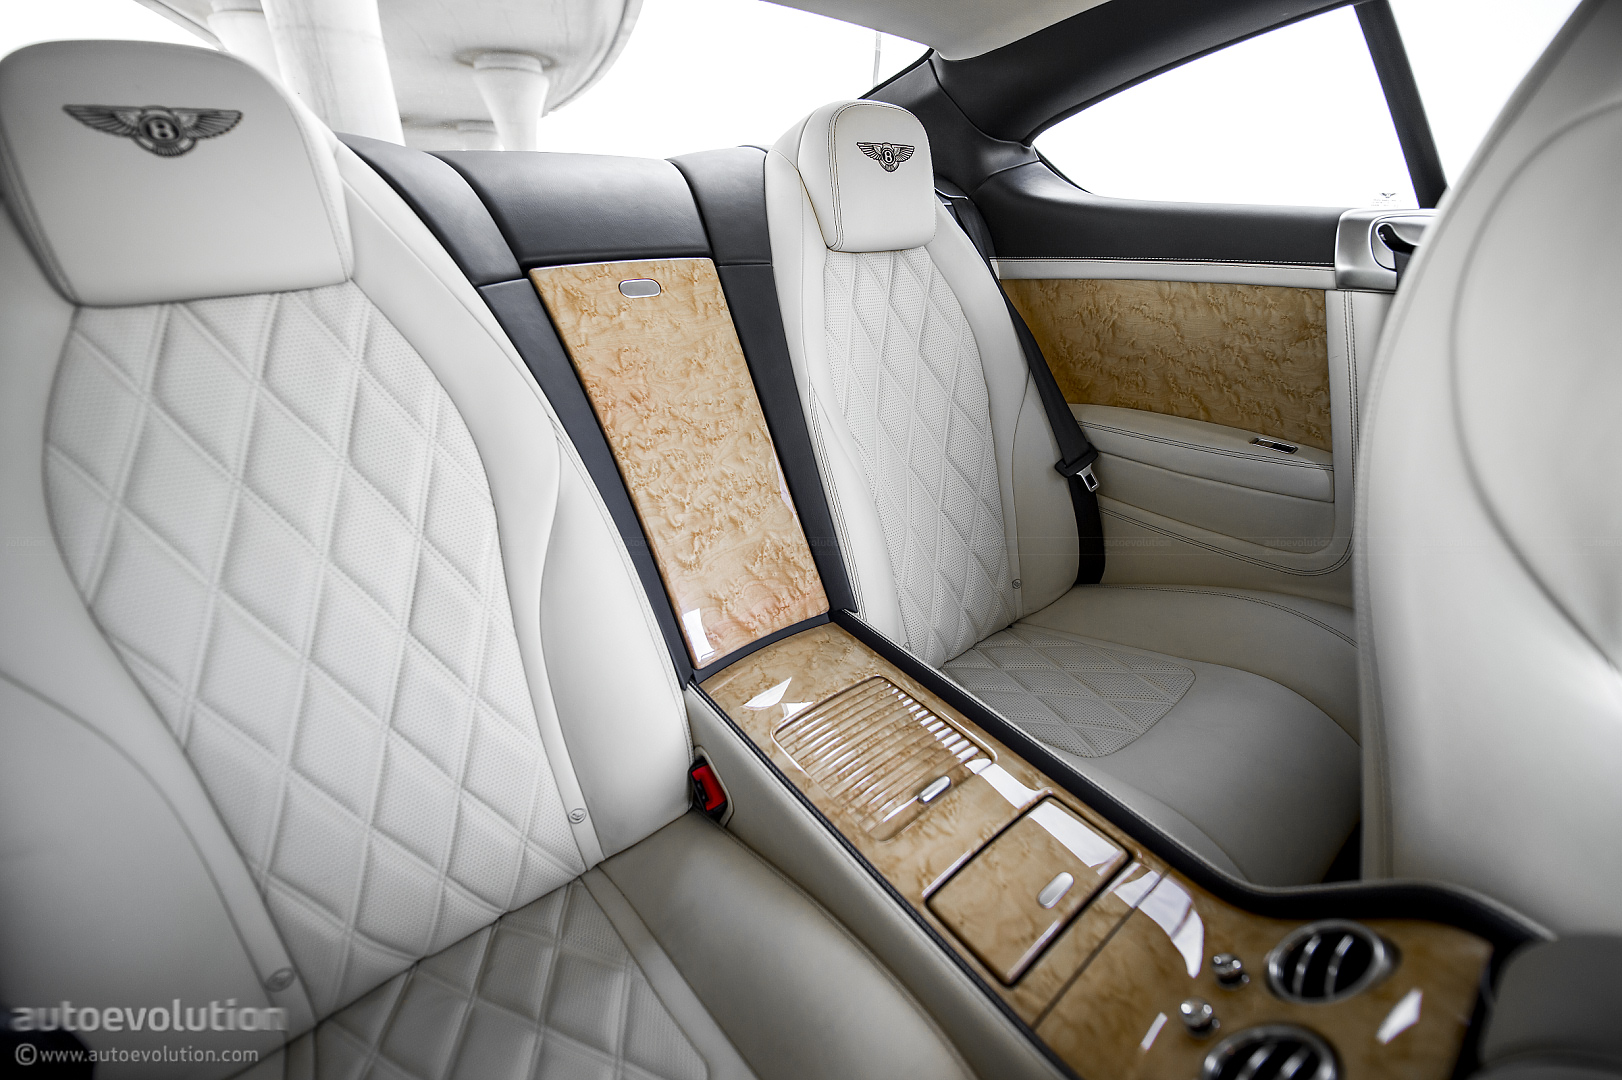 p light speed water mystere bentley outdoor gtc cover indoor duty asp car continental resistant gt